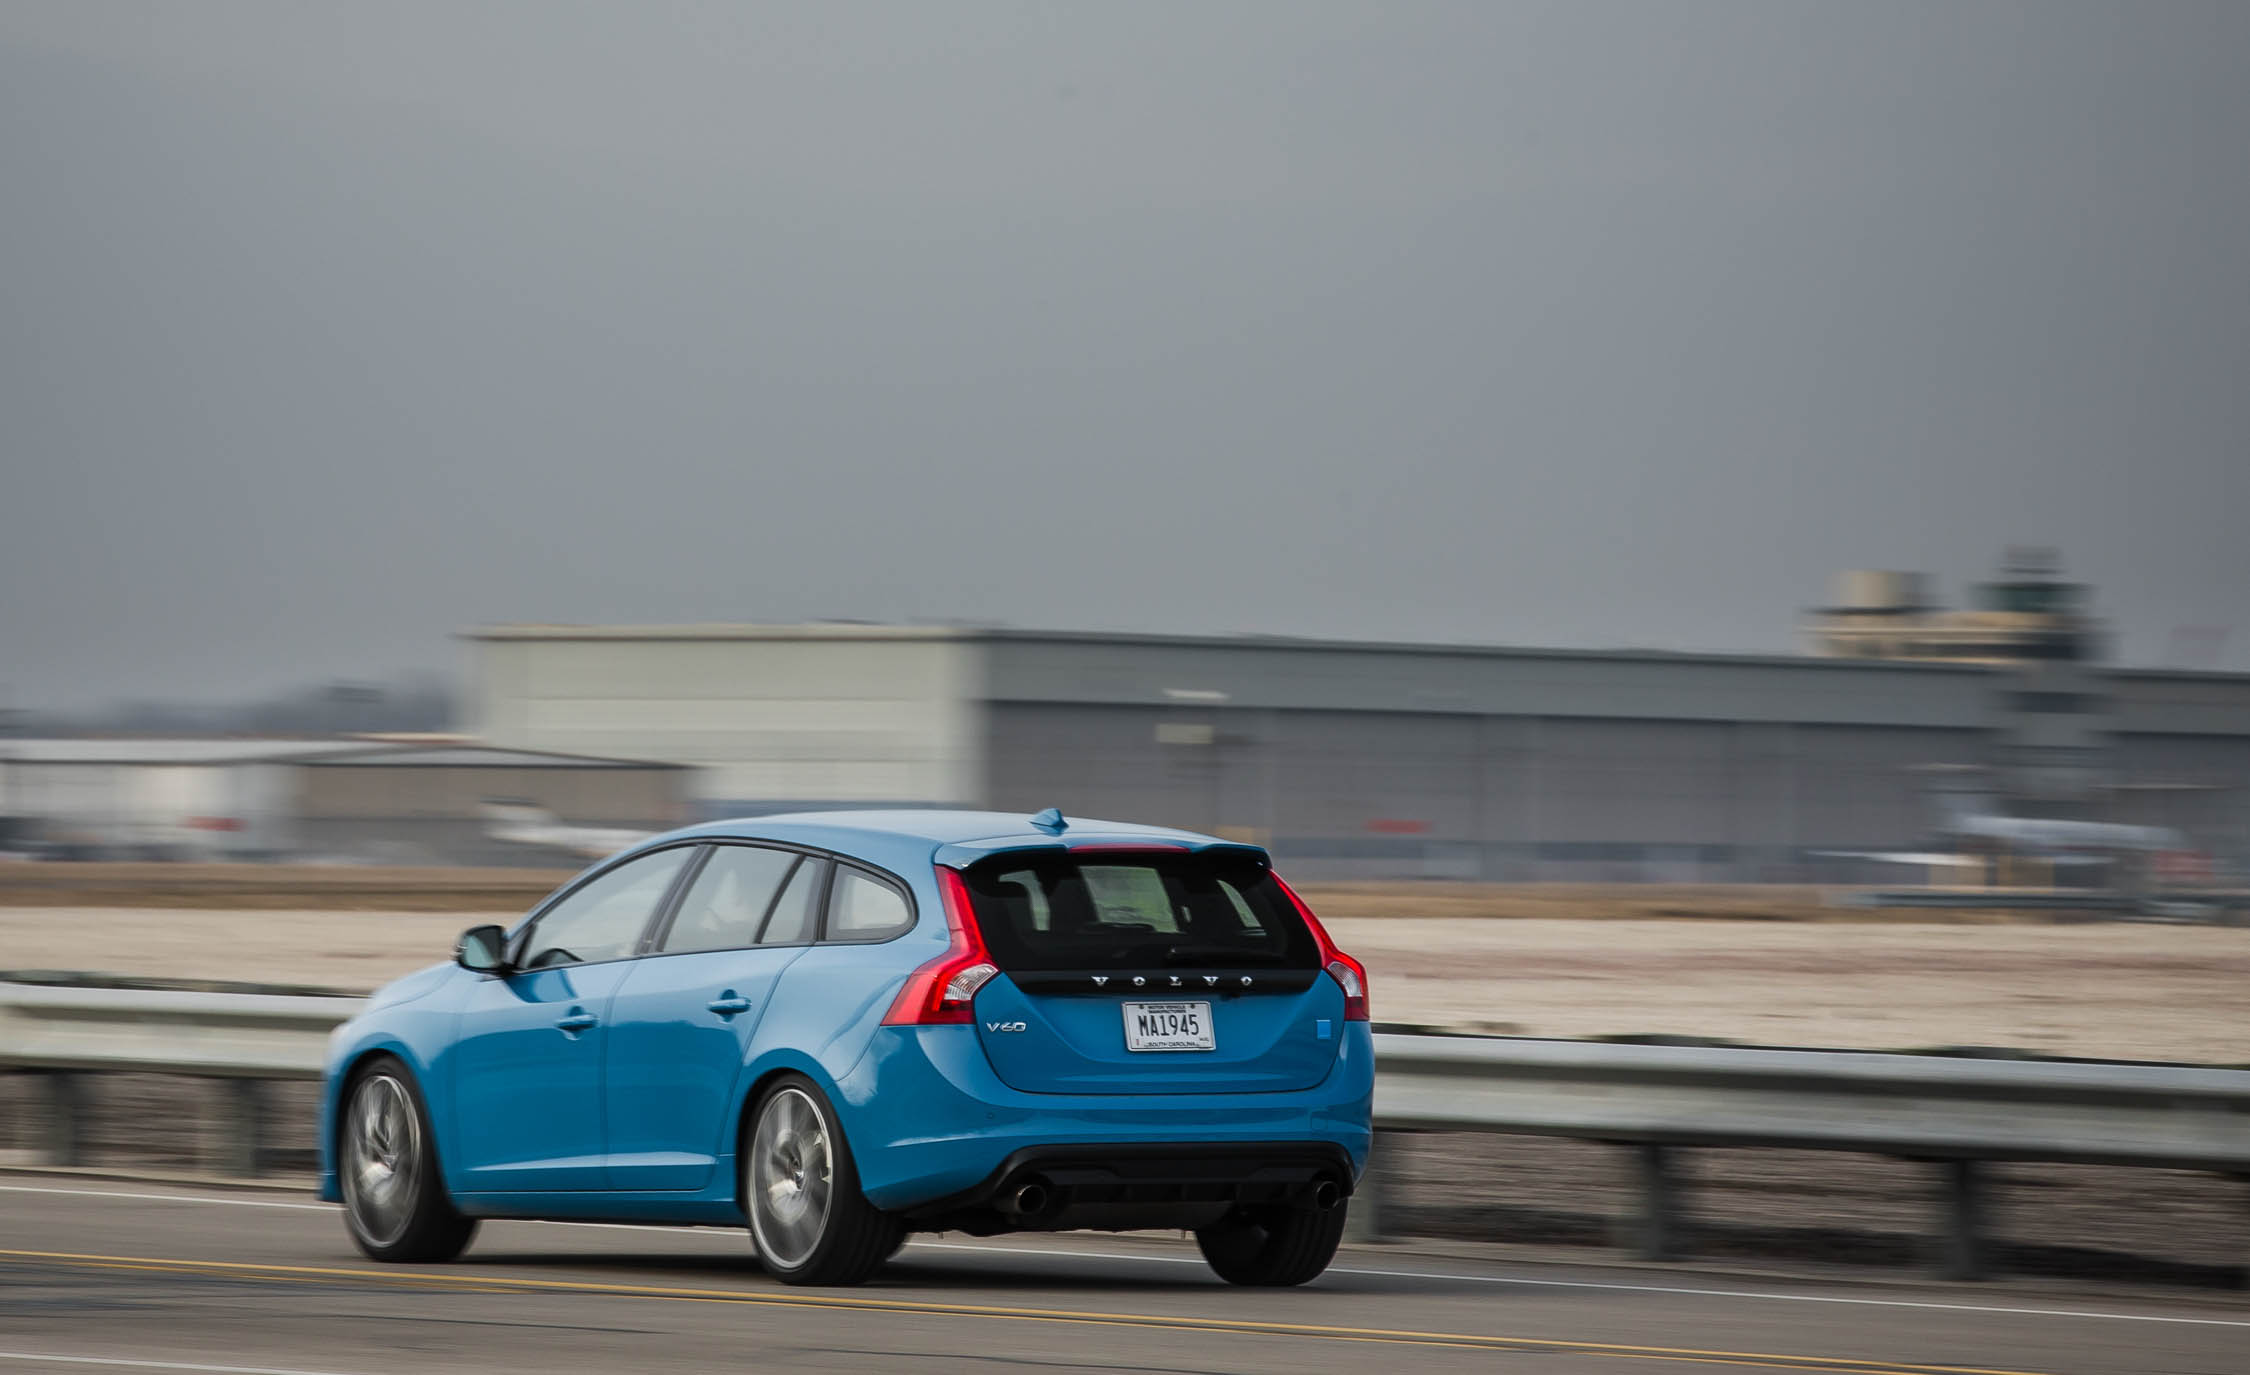 2017 Volvo V60 Polestar Test Drive Rear And Side Preview (View 11 of 53)